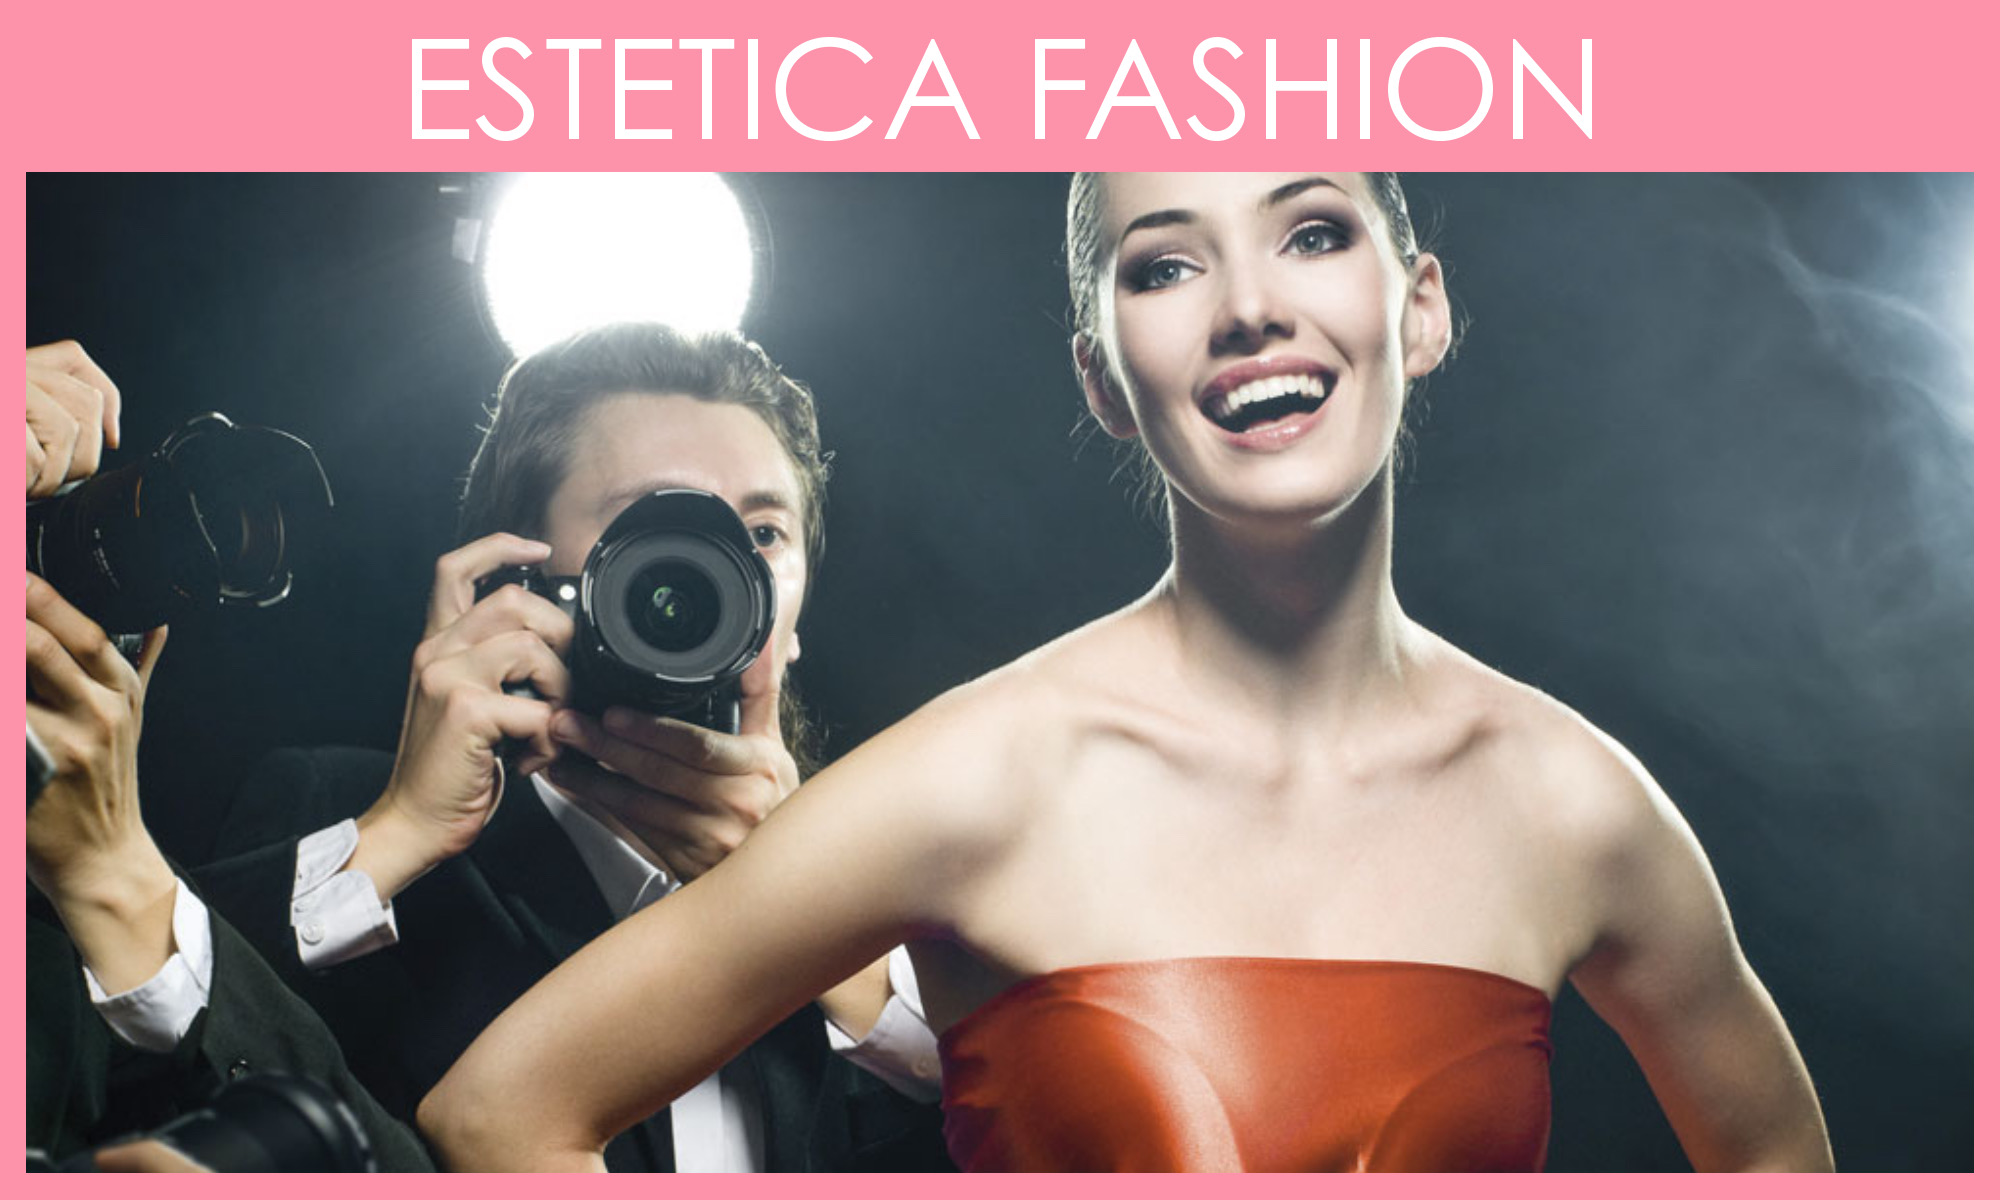 Estetica Fashion